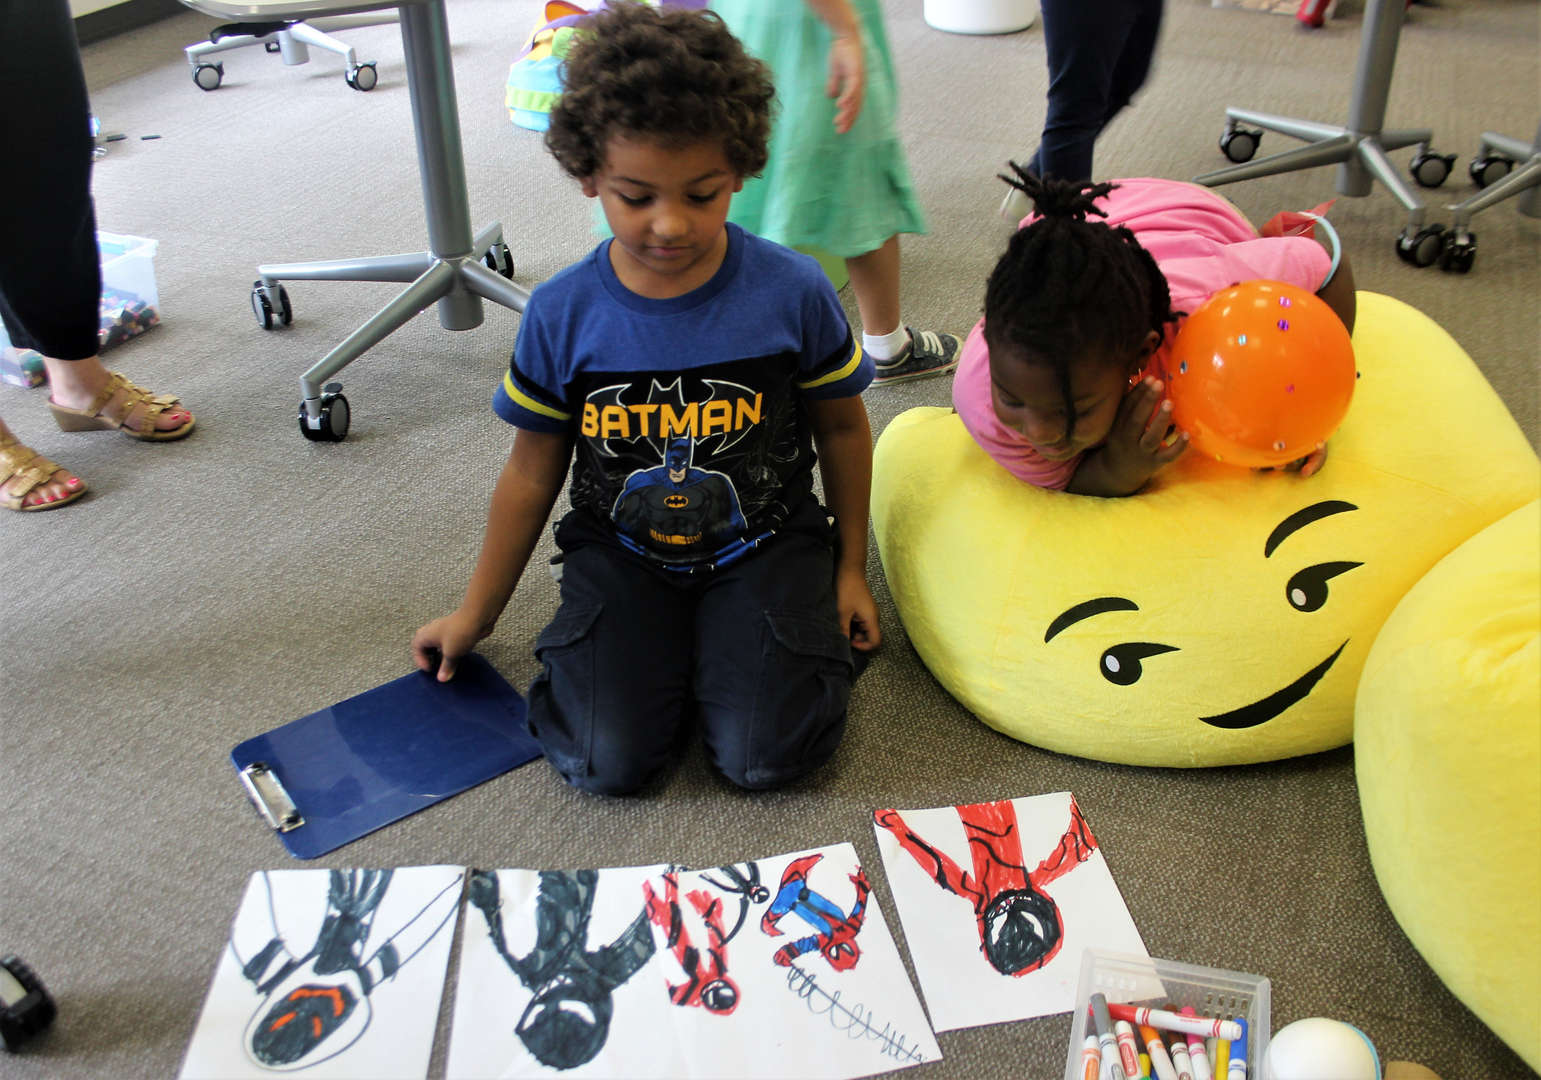 A first-grader displays his superhero artwork in the Makerspace.